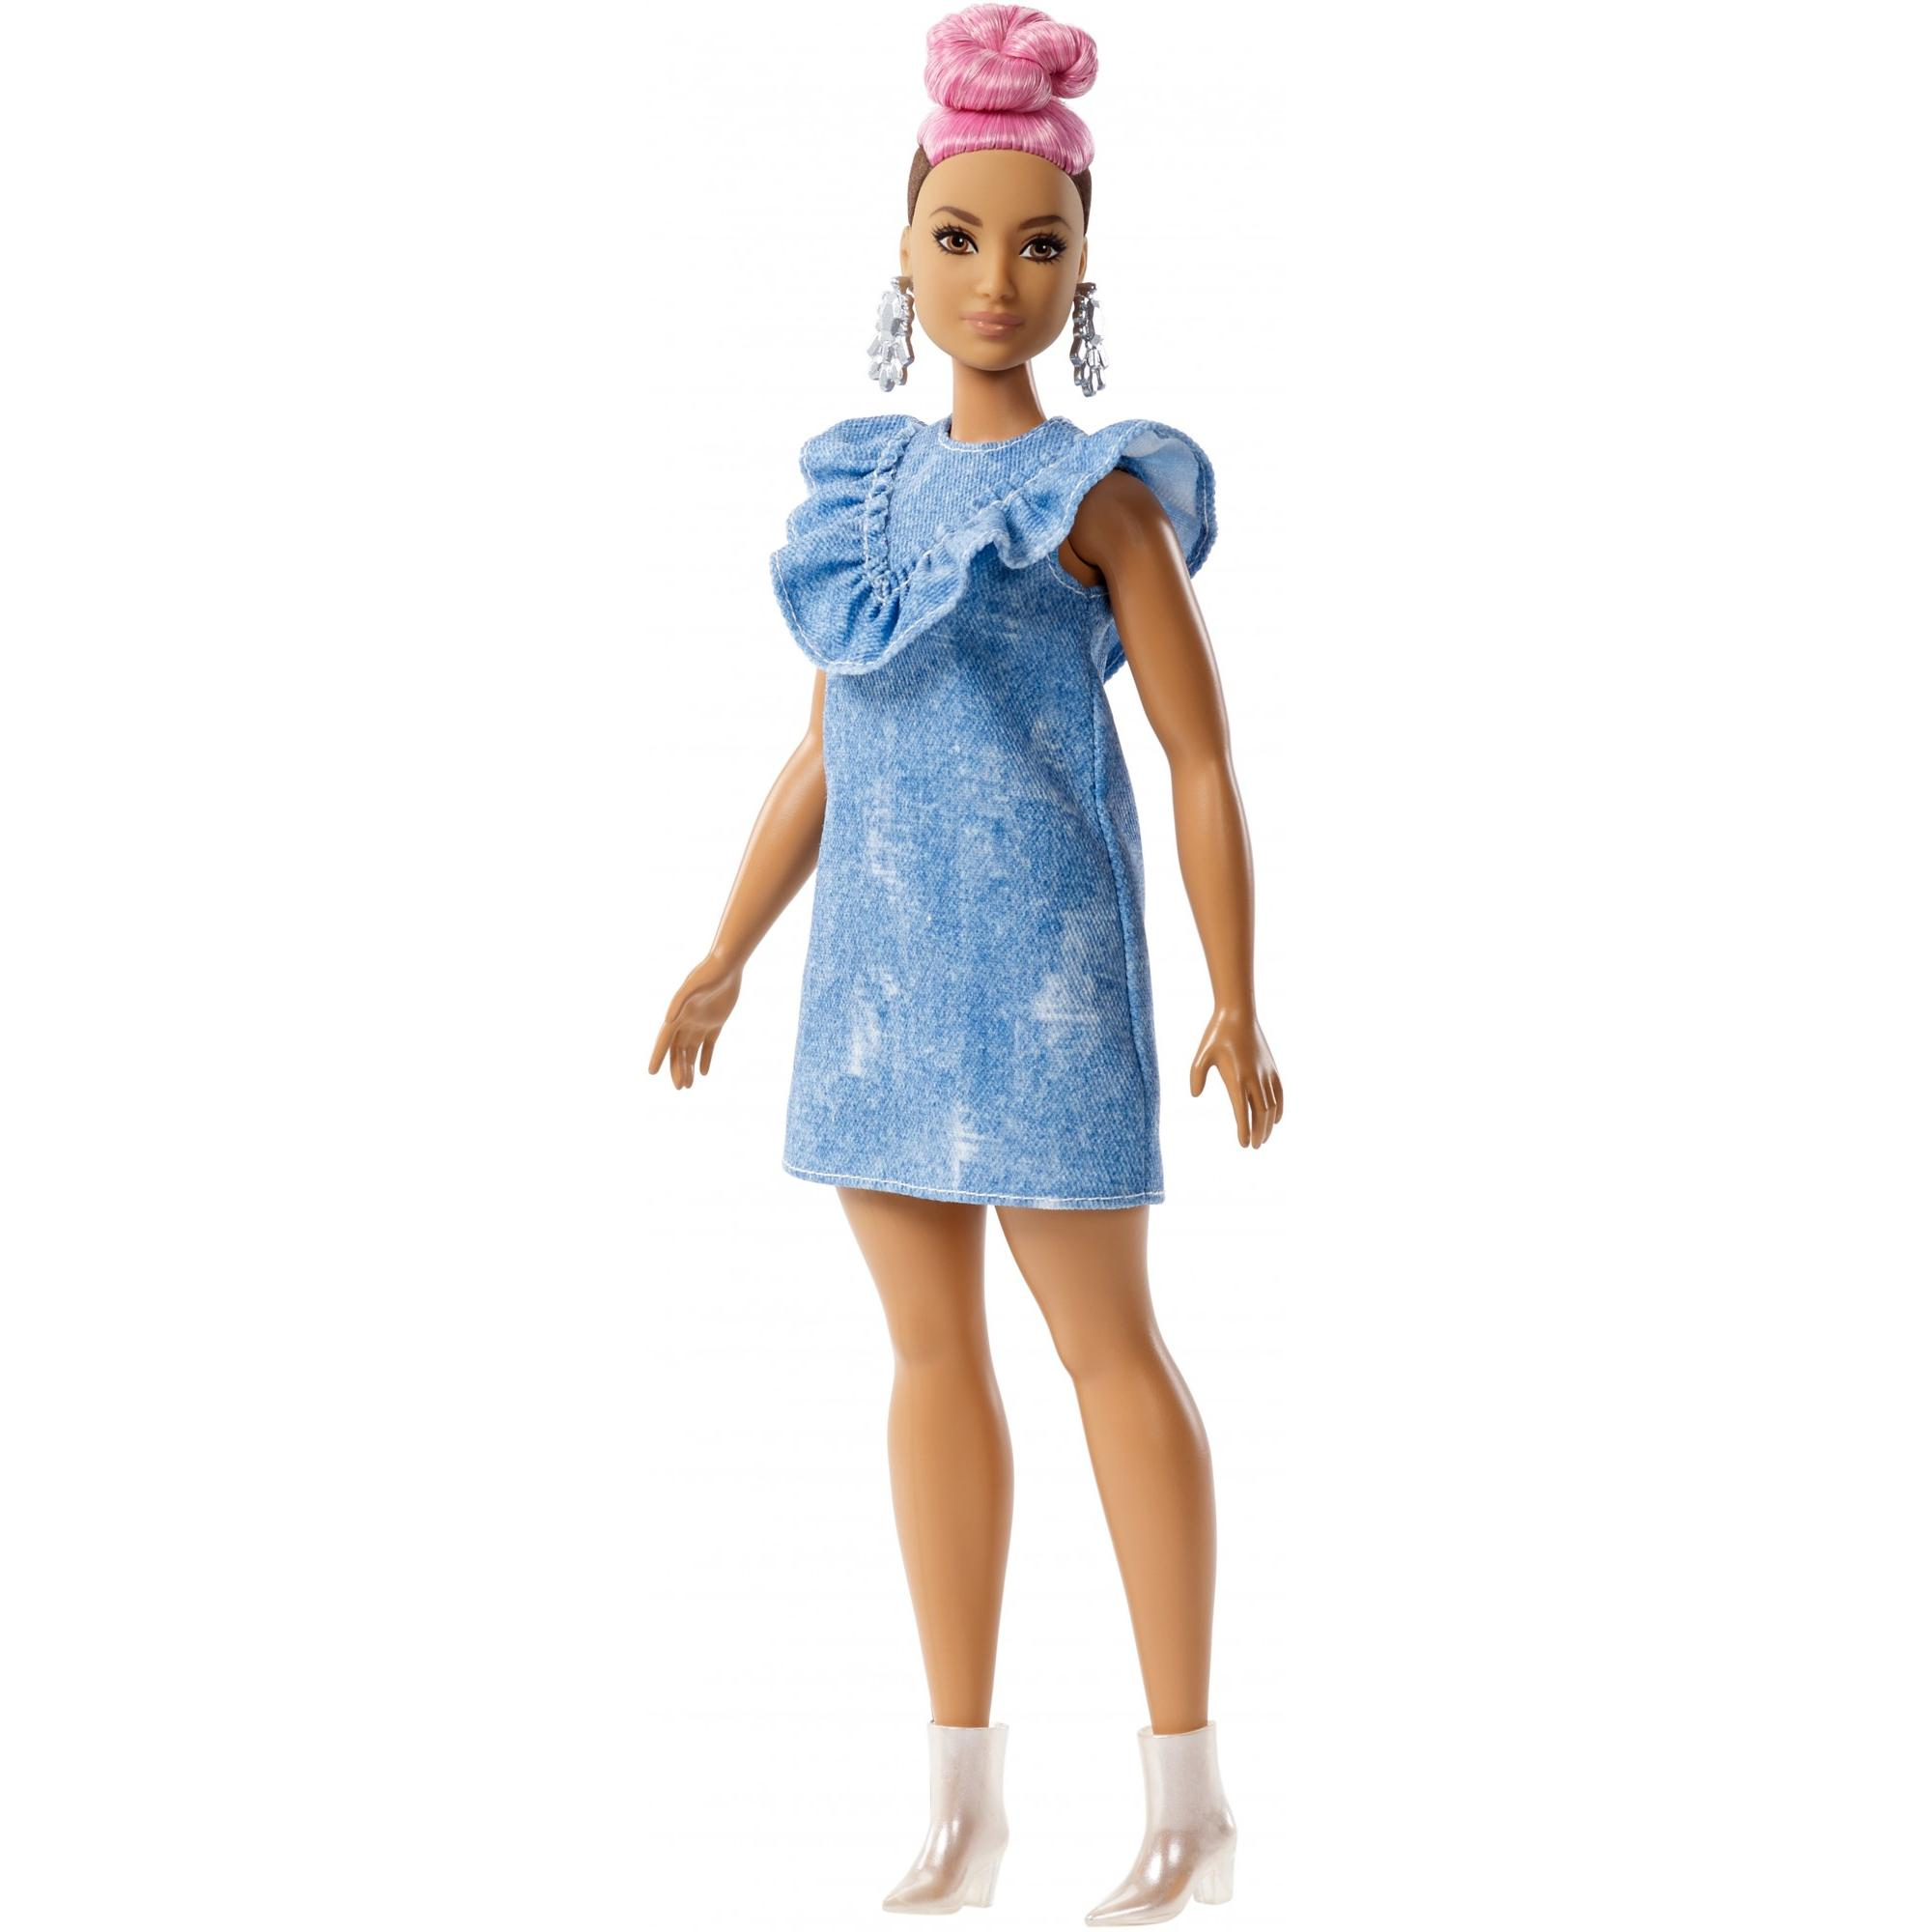 Barbie Fashionistas Doll 95, Denim Dress, Pink Hair by Mattel